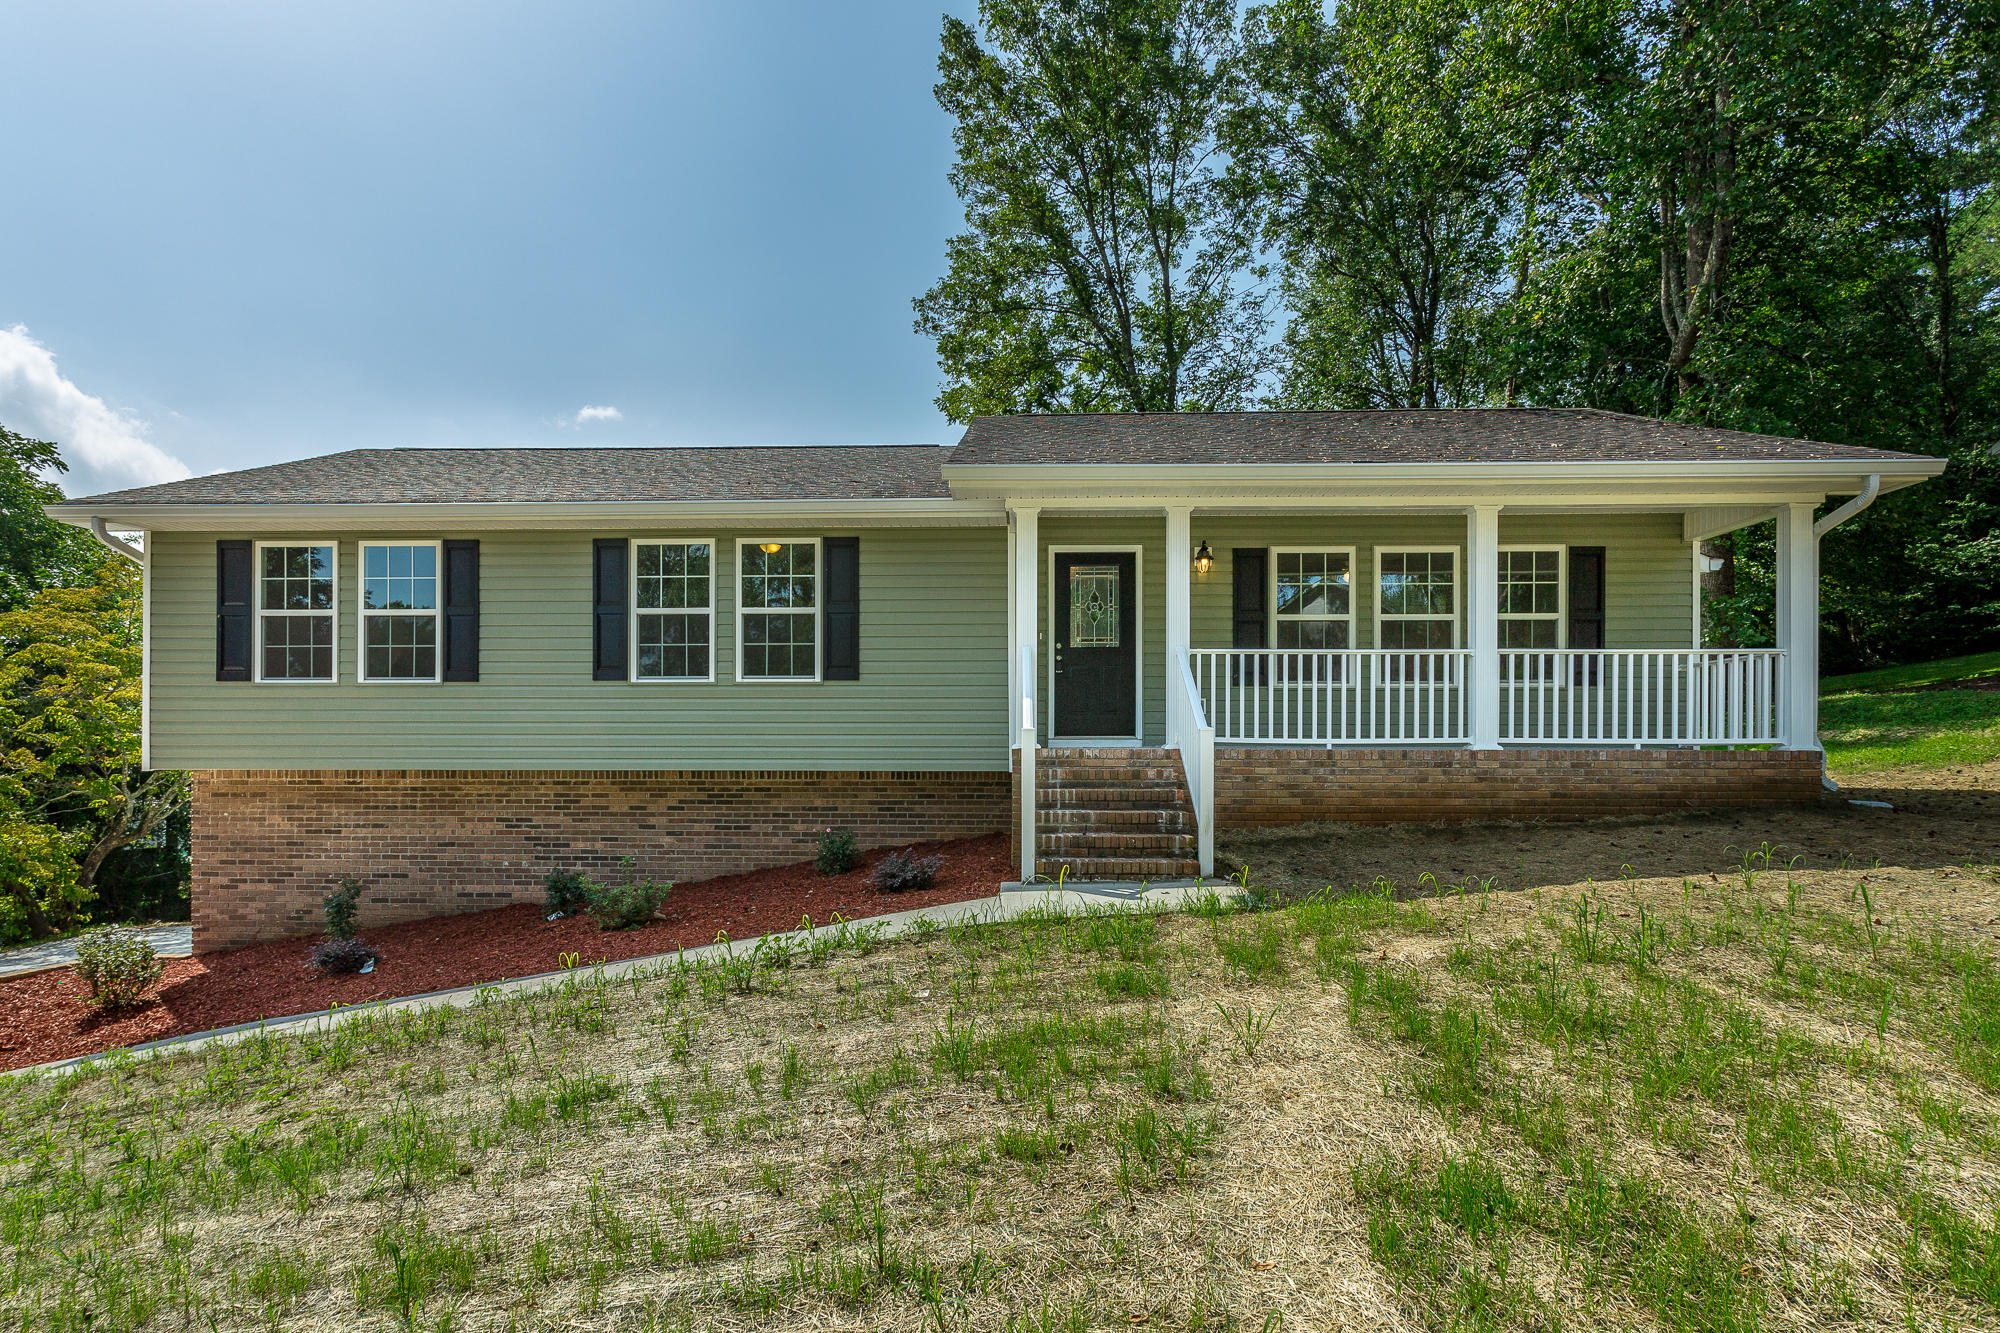 Details for 5703 Bent, Harrison, TN 37341